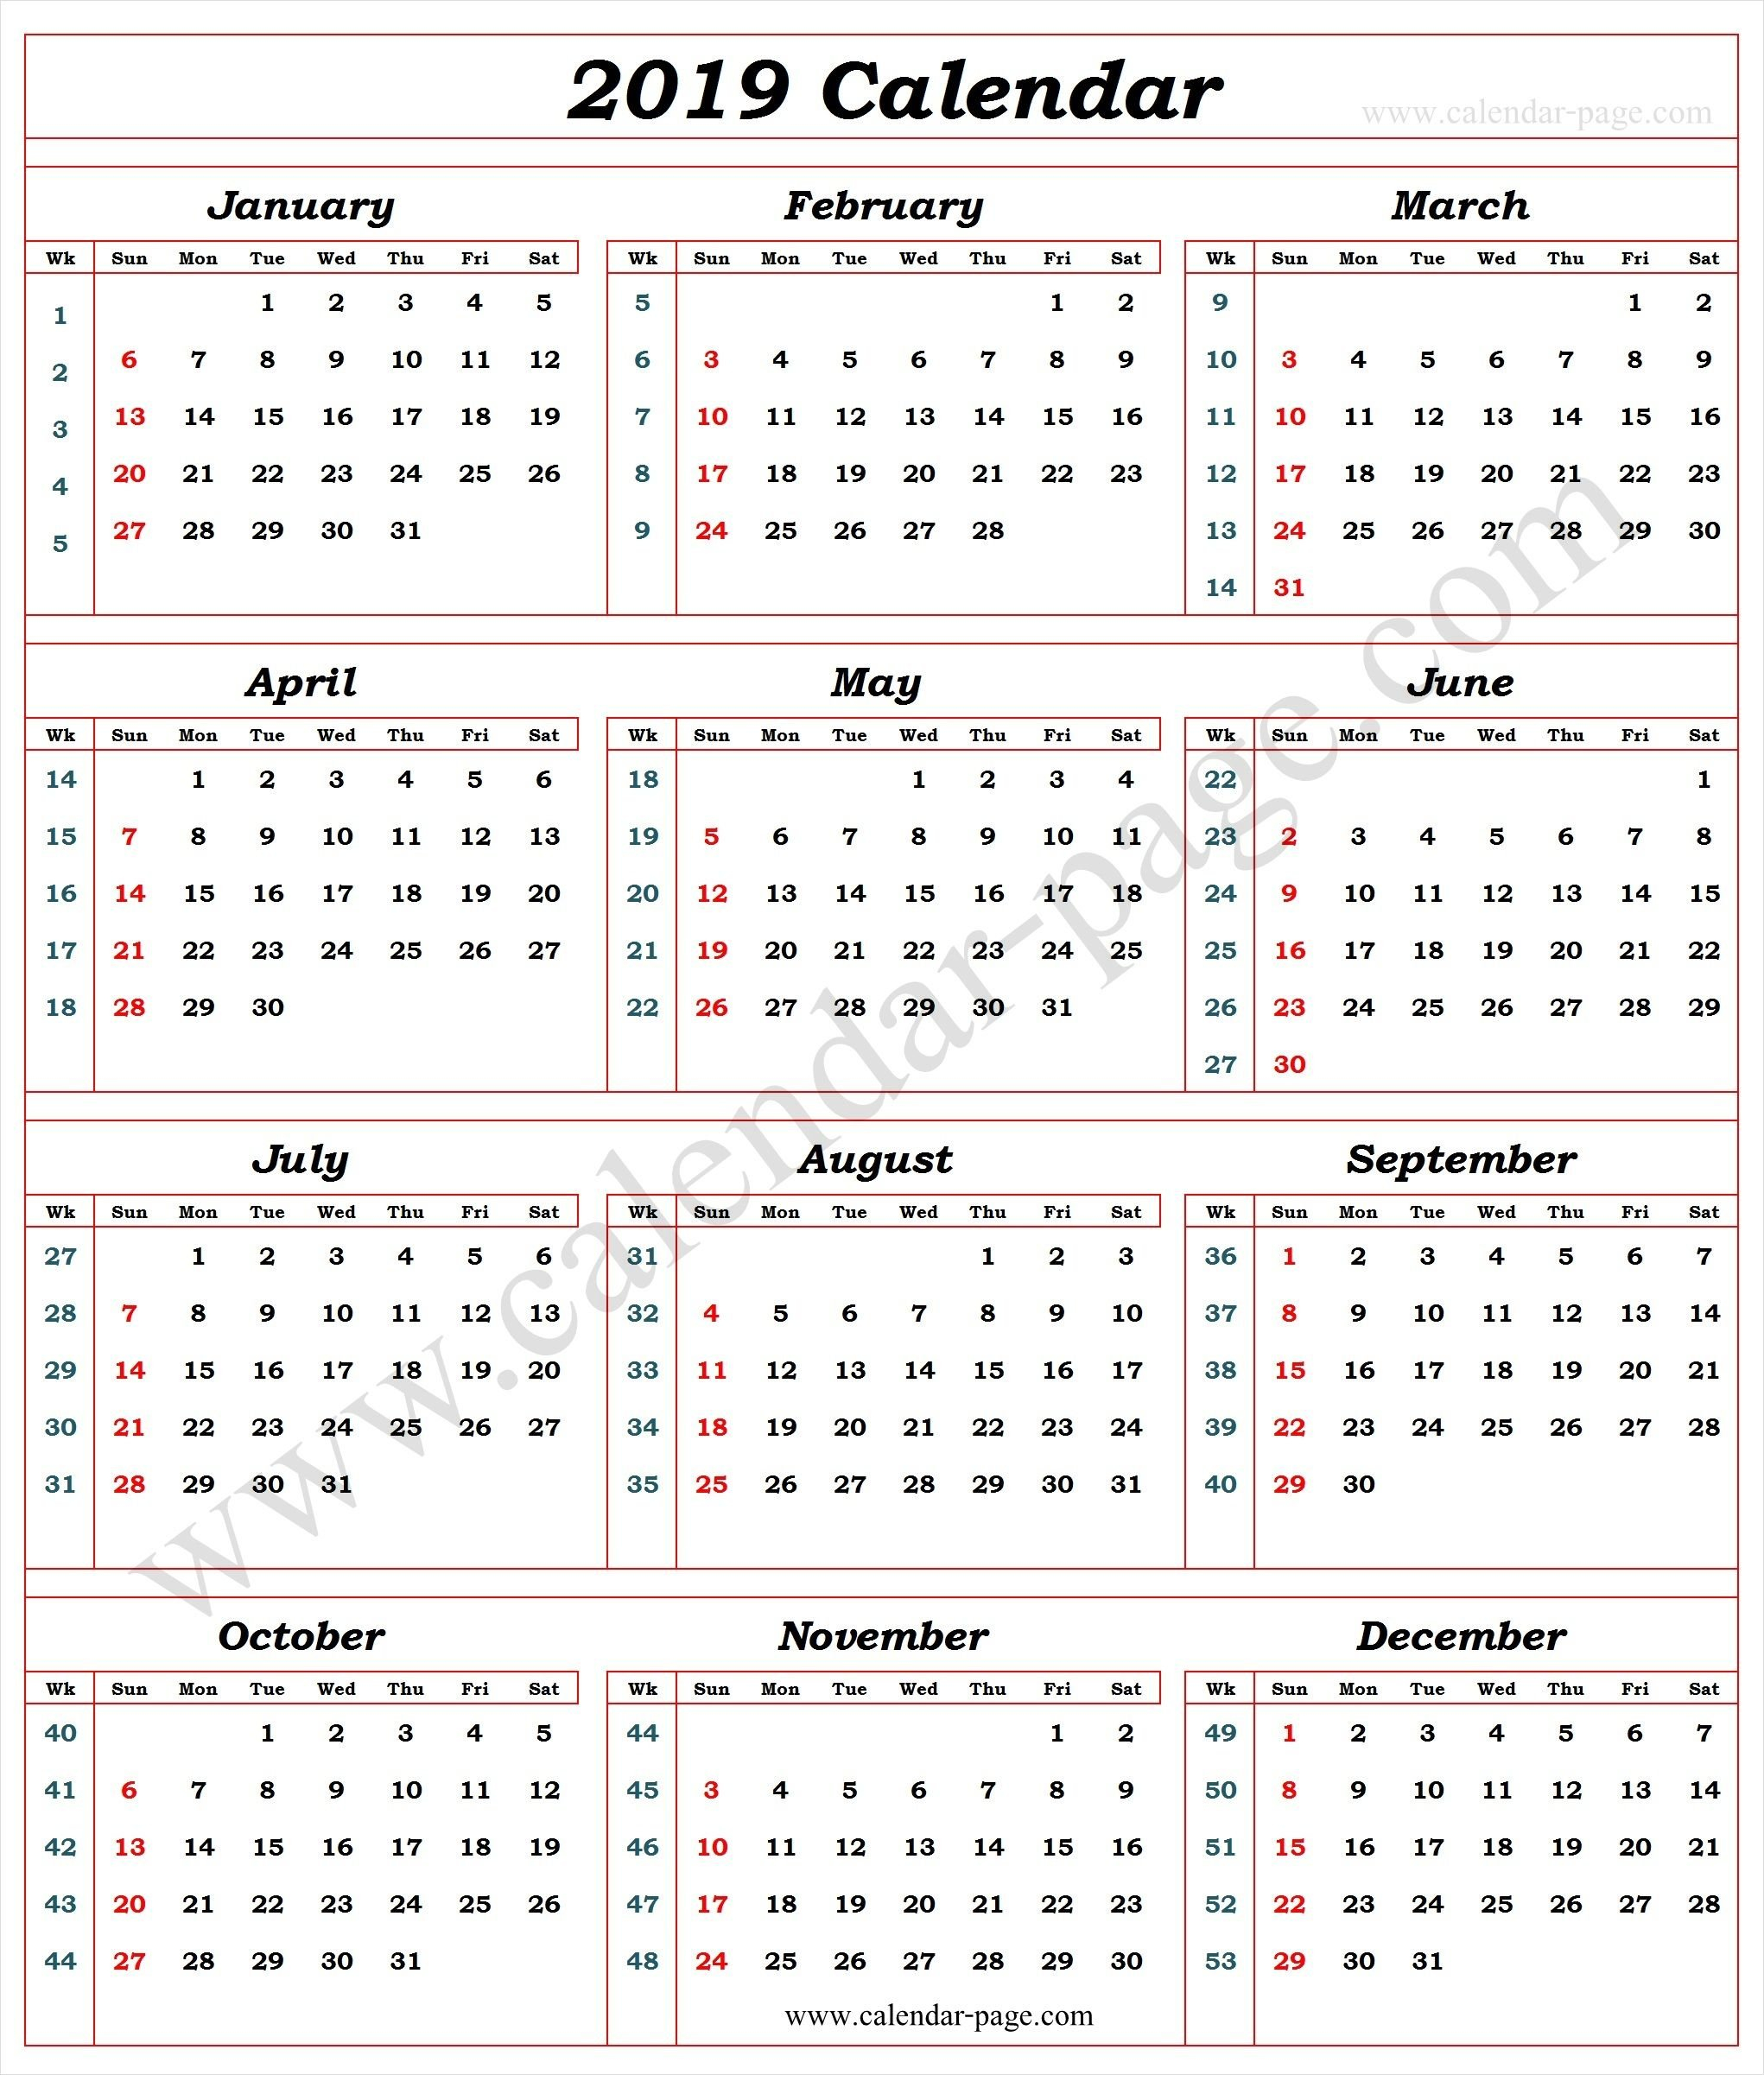 Calendar 2019 With Week Numbers | 2019 Calendar Template | Calendar Calendar Week 11 2019